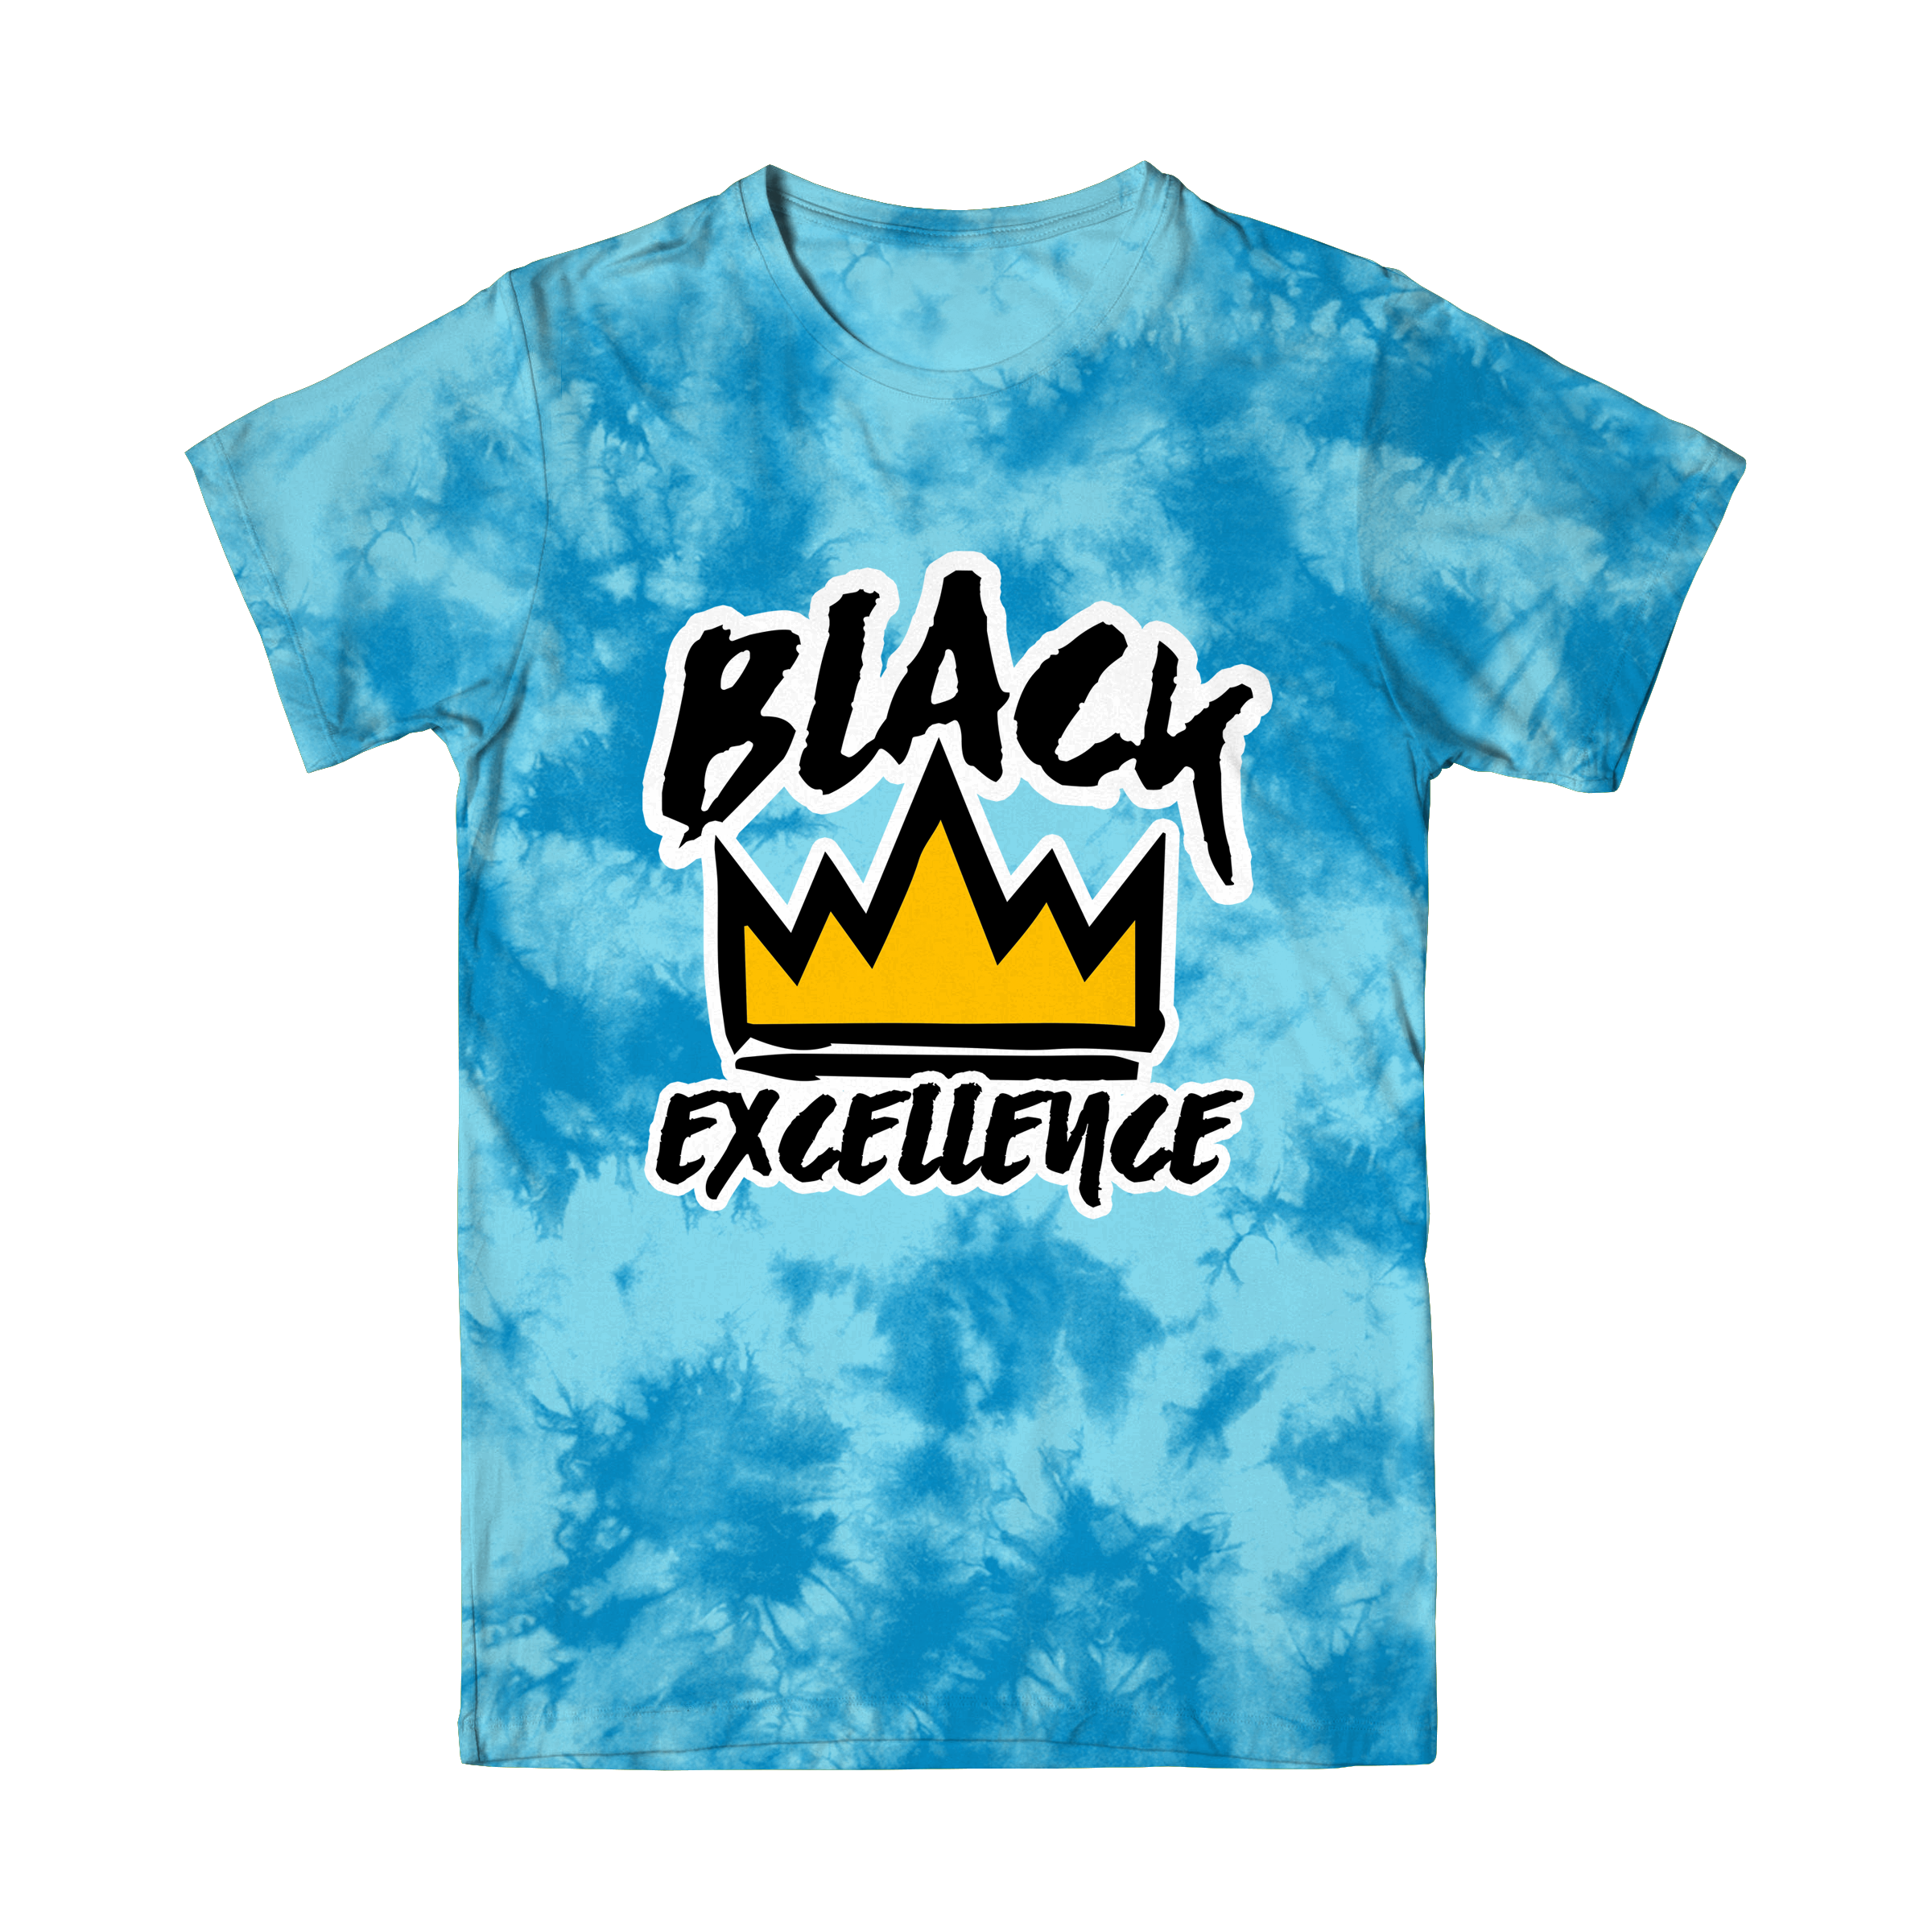 Light Blue Tie-Dye Black Excellence T Shirt